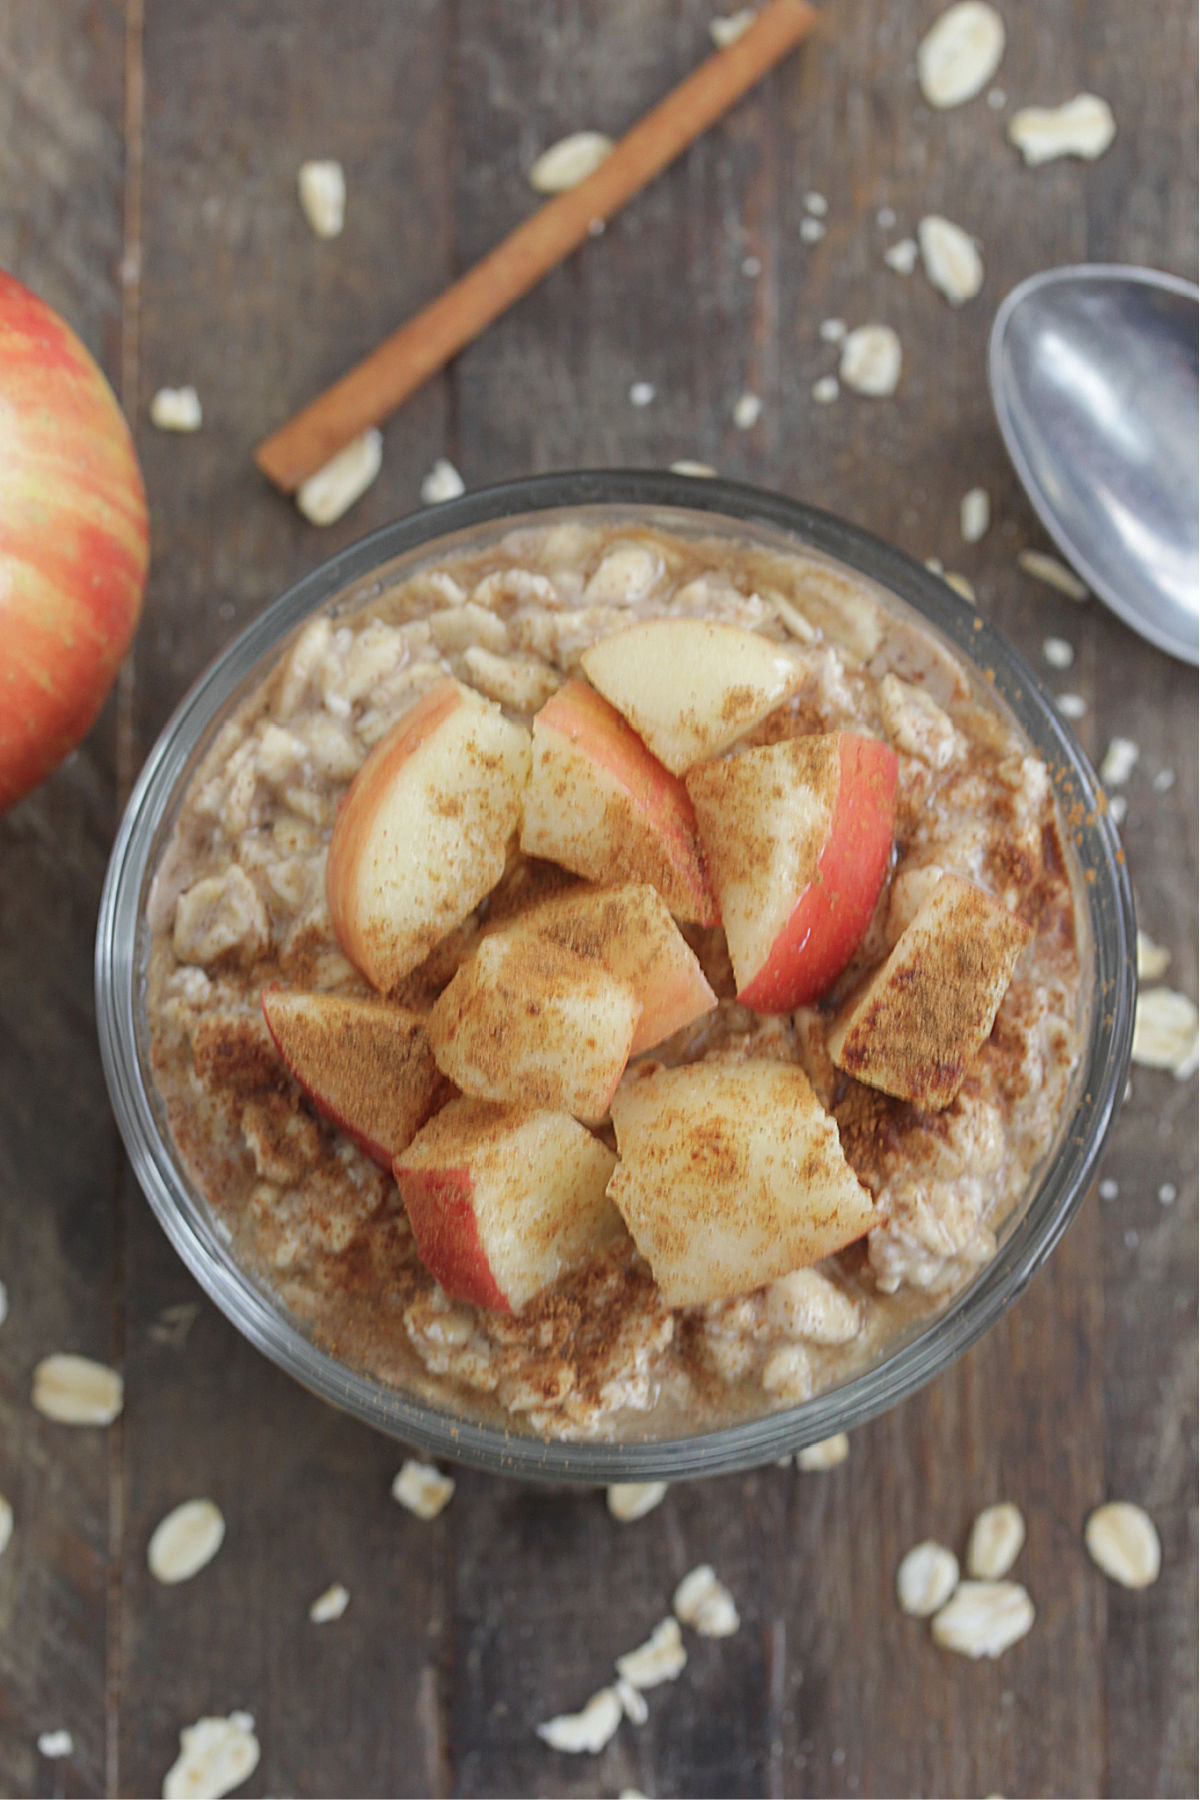 Overhead shot of Apple Cinnamon Overnight Oats in a glass jar with diced apples and cinnamon on top